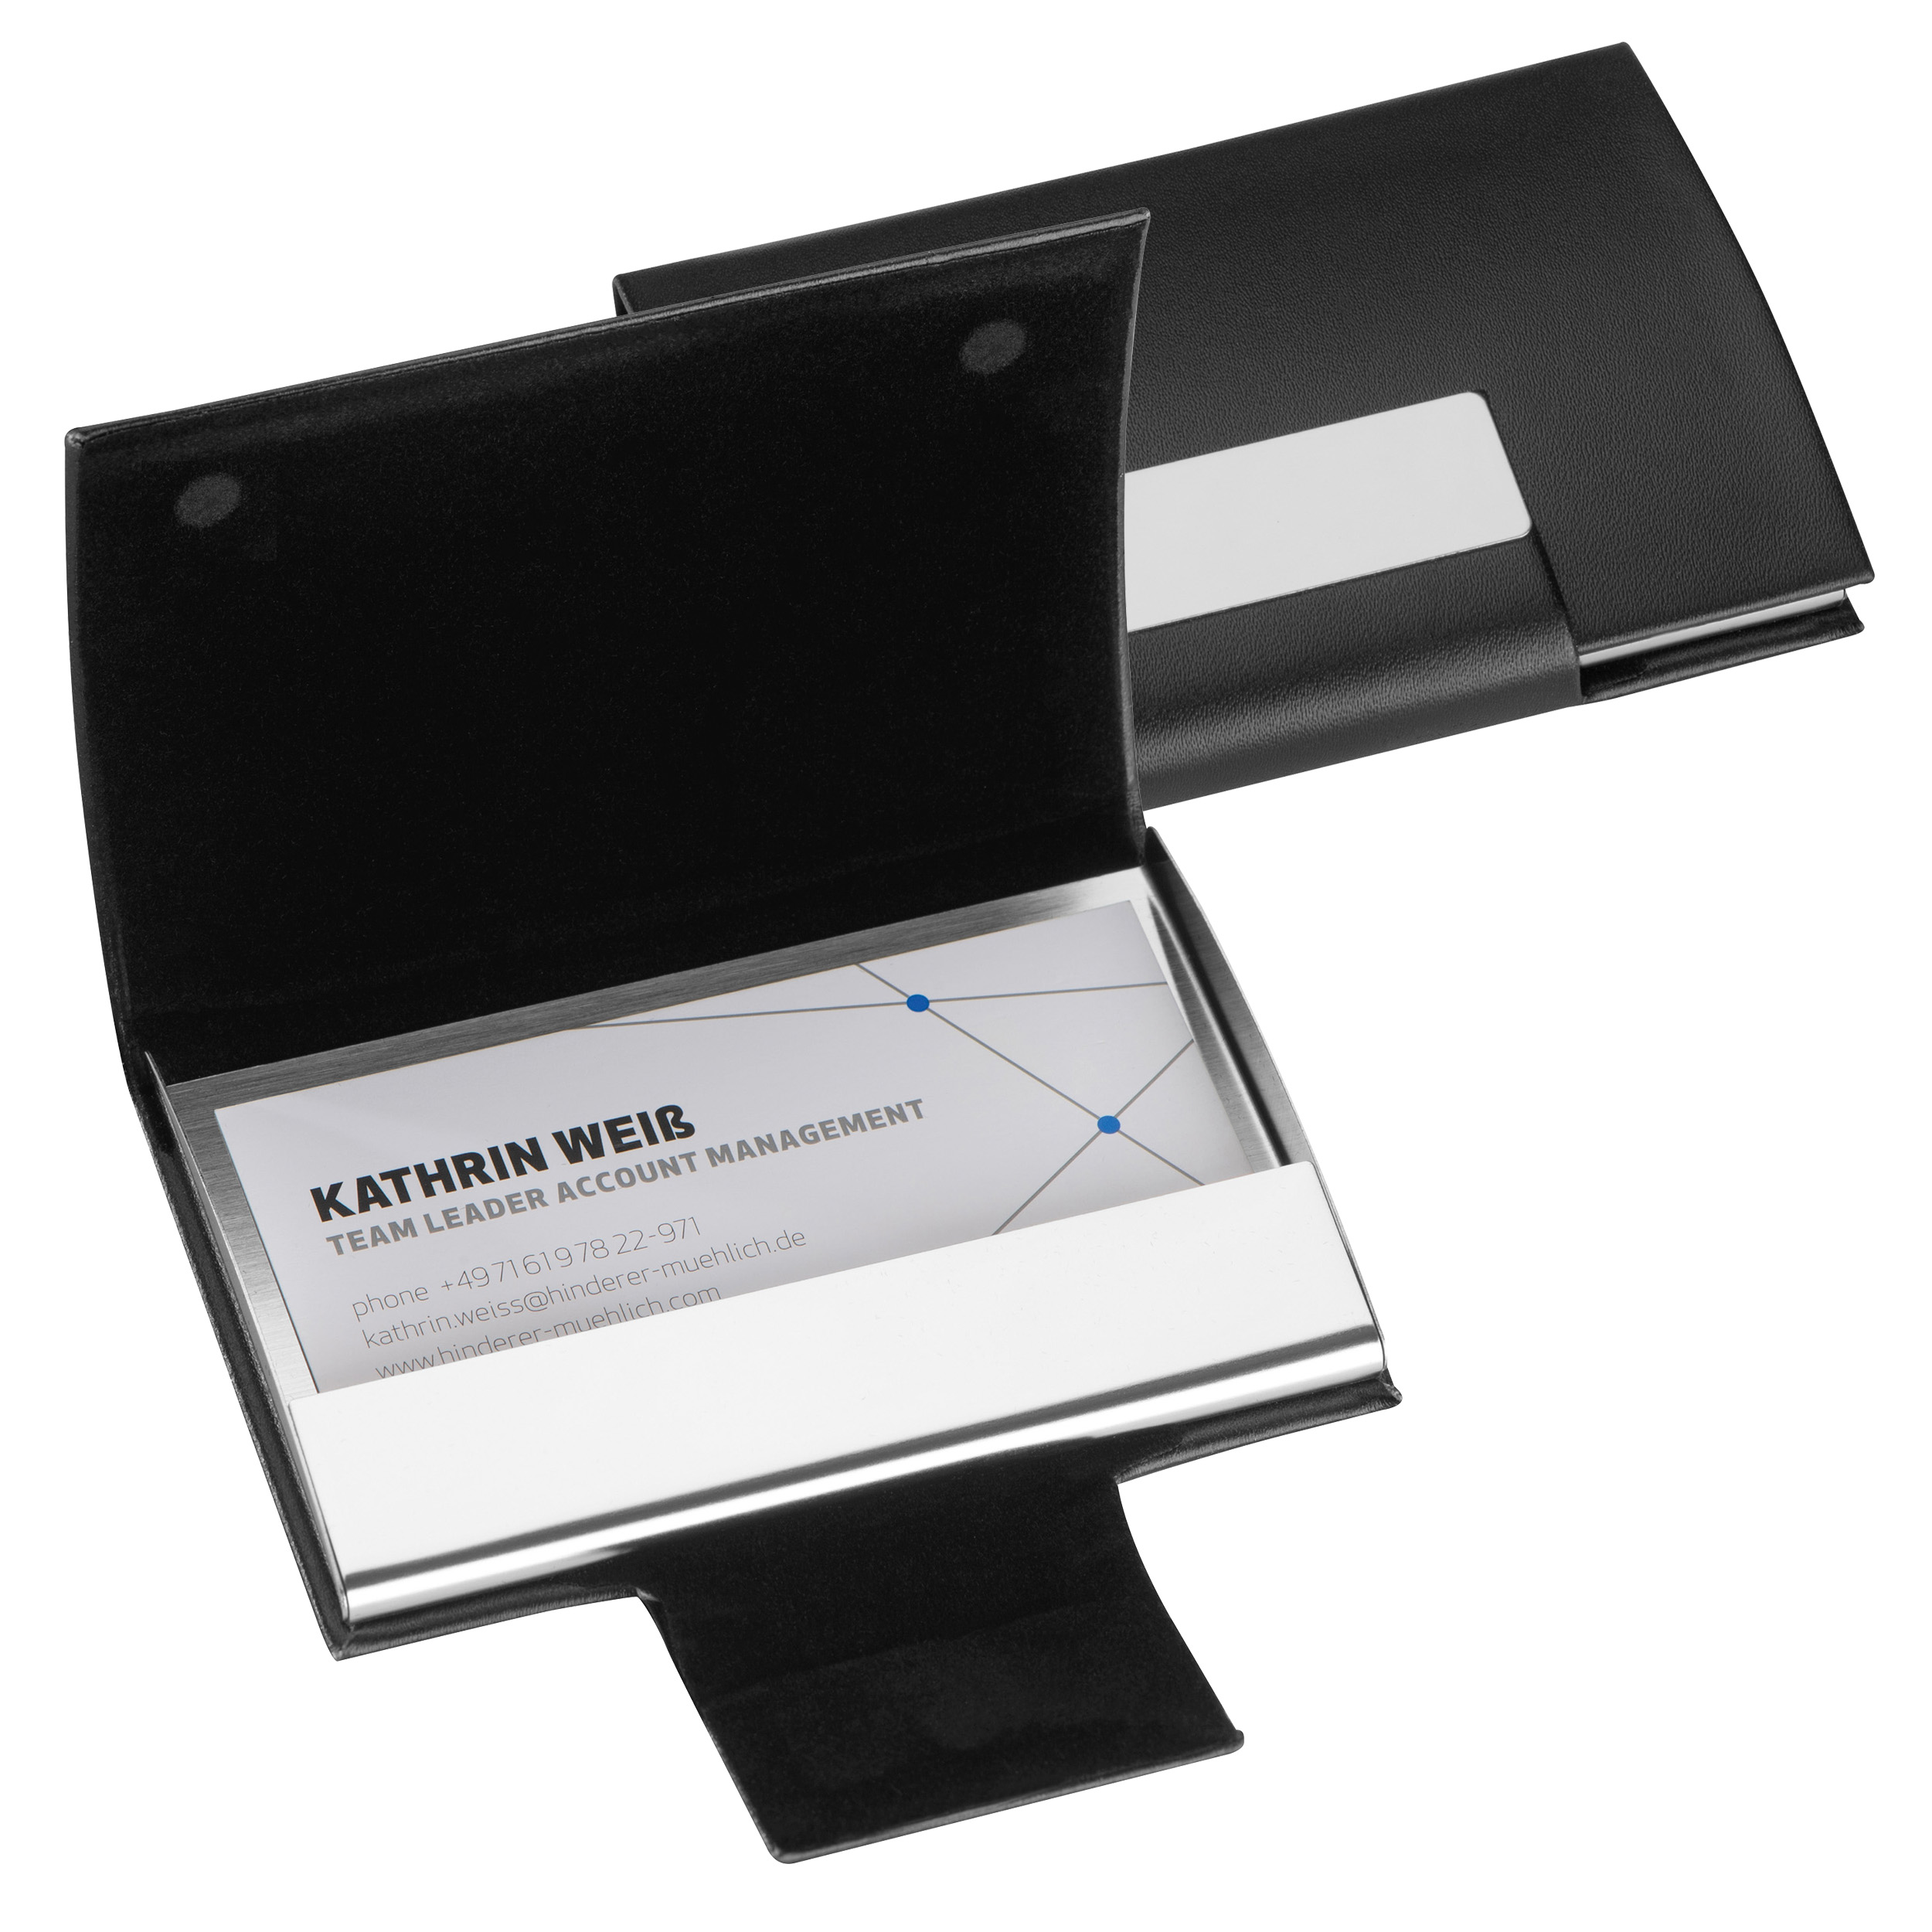 Business card<br> holder with cover<br>made of synthetic